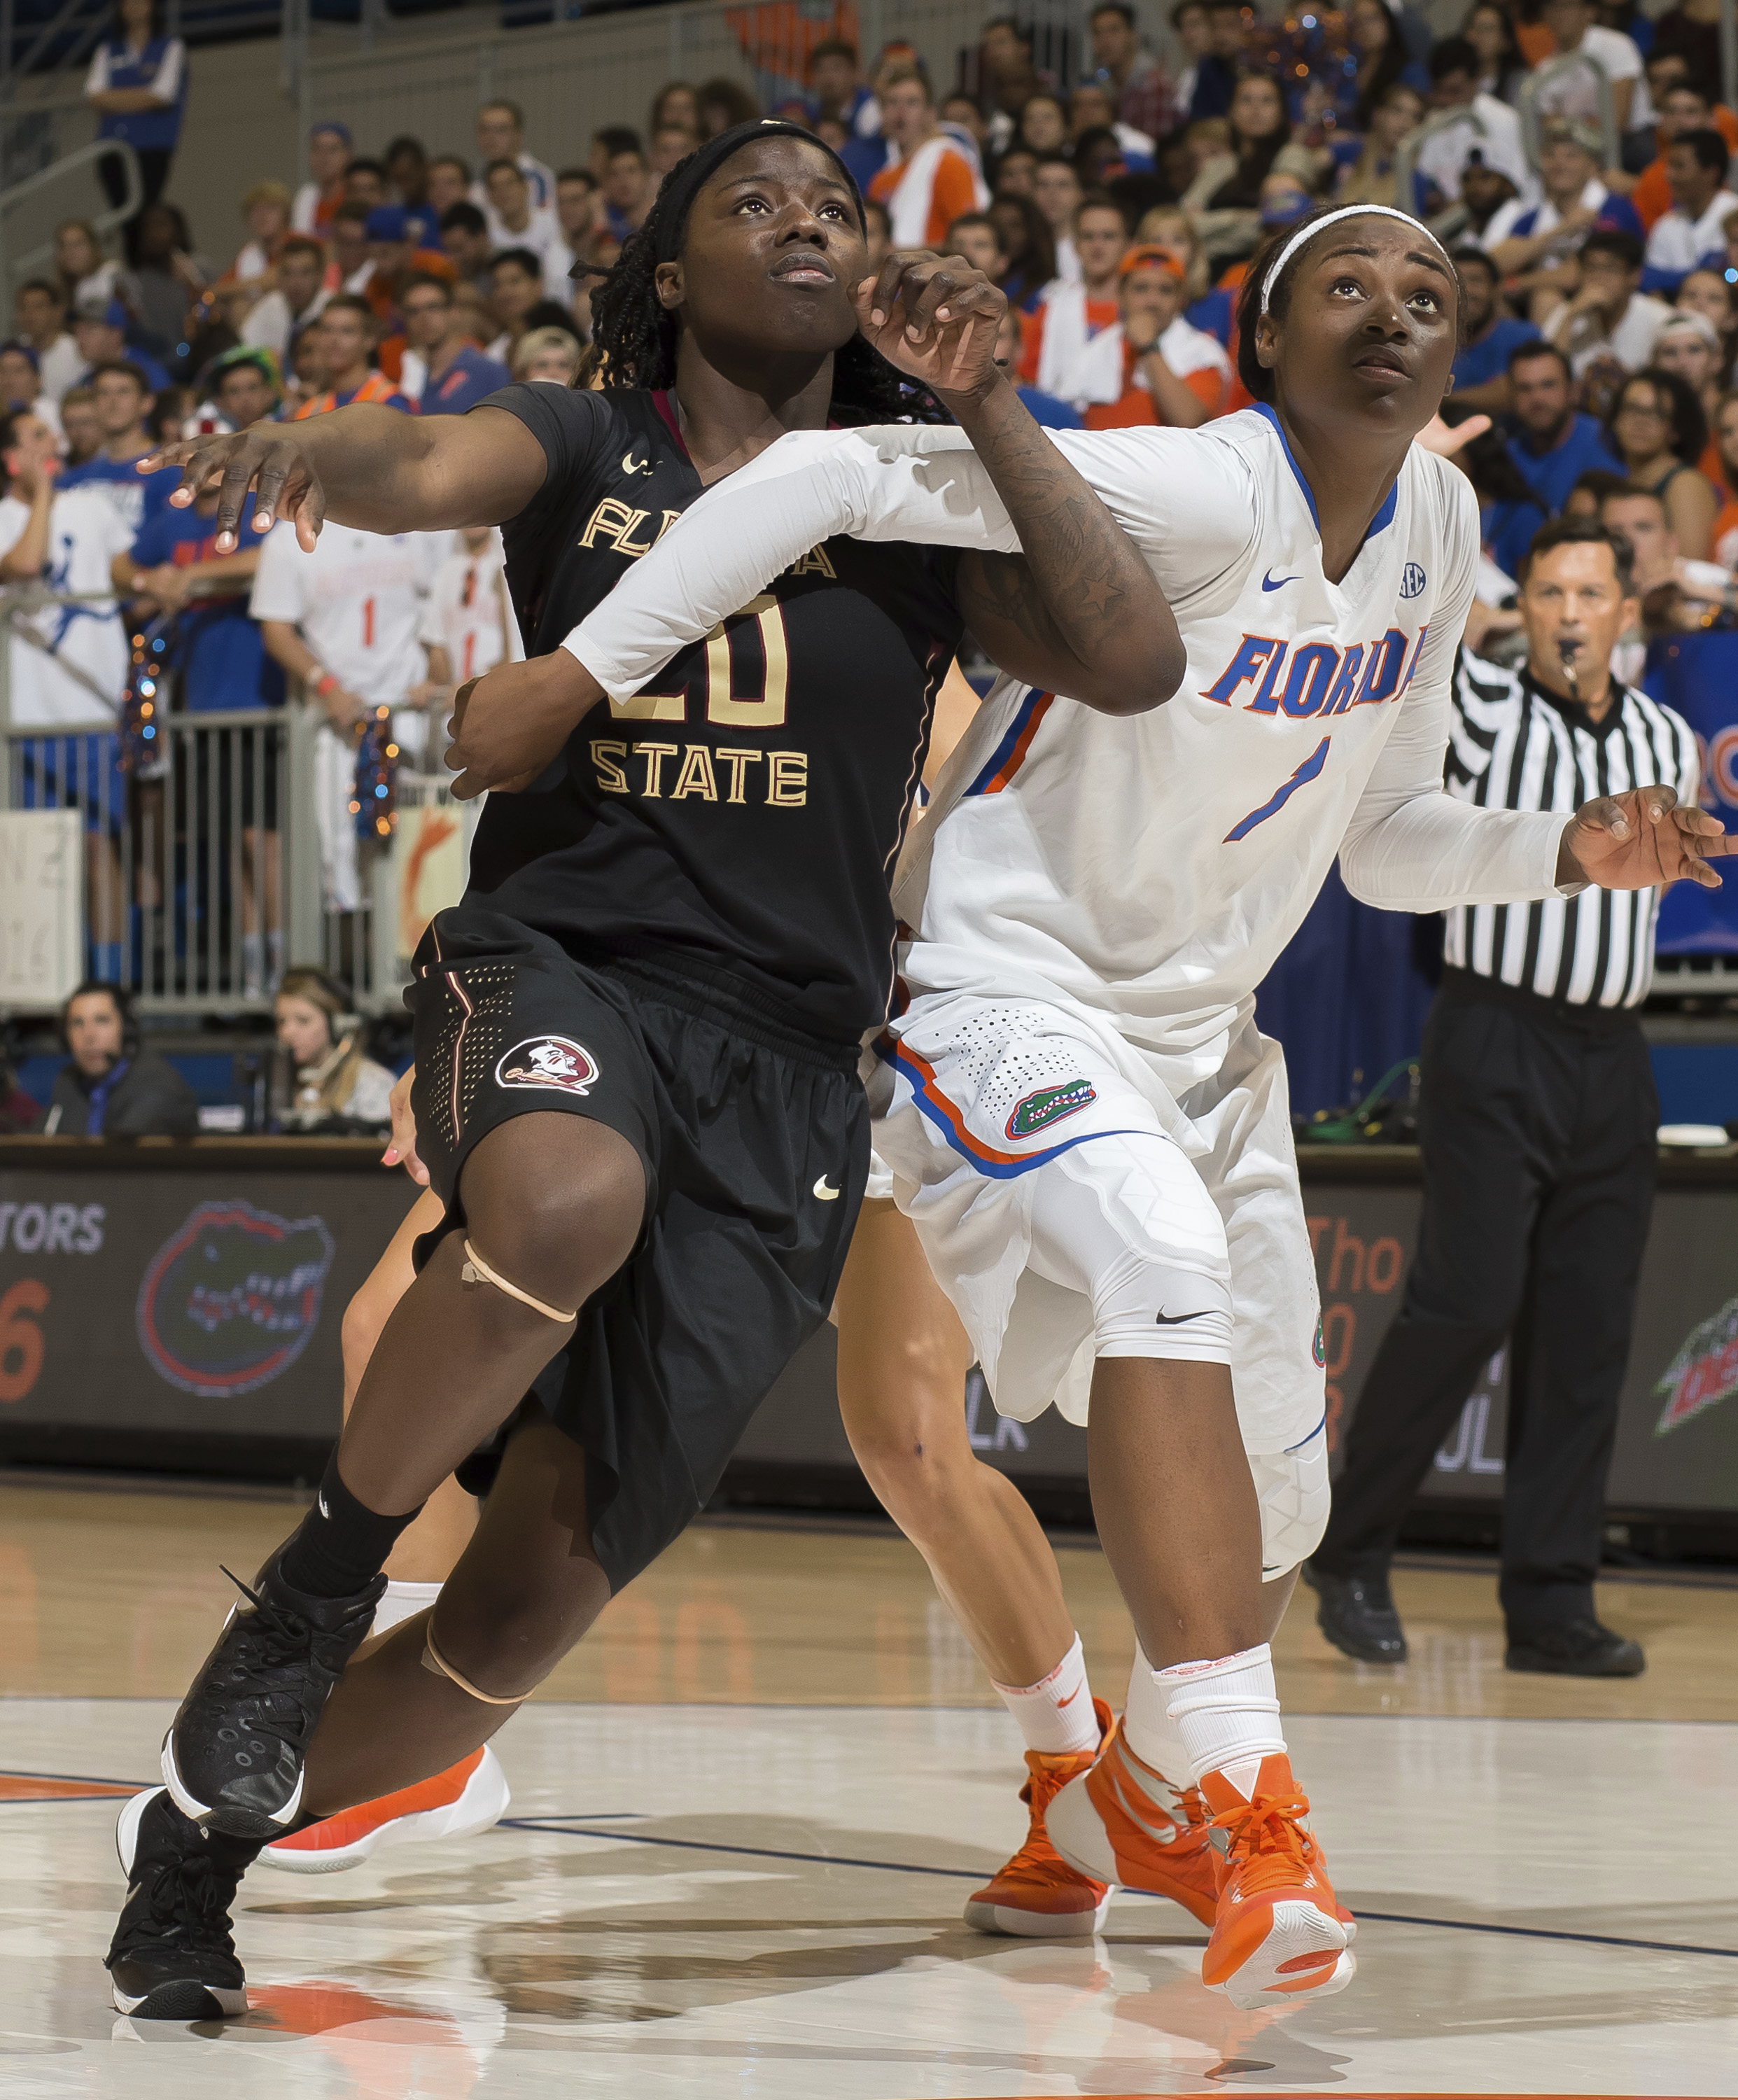 FILE- In tis Nov. 16, 2016 file photo, Florida State forward Shakayla Thomas (20) and Florida guard/forward Ronni Williams (1) battle for position under the basket during the second half of an NCAA college basketball game in Gainesville, Fla. For the firs